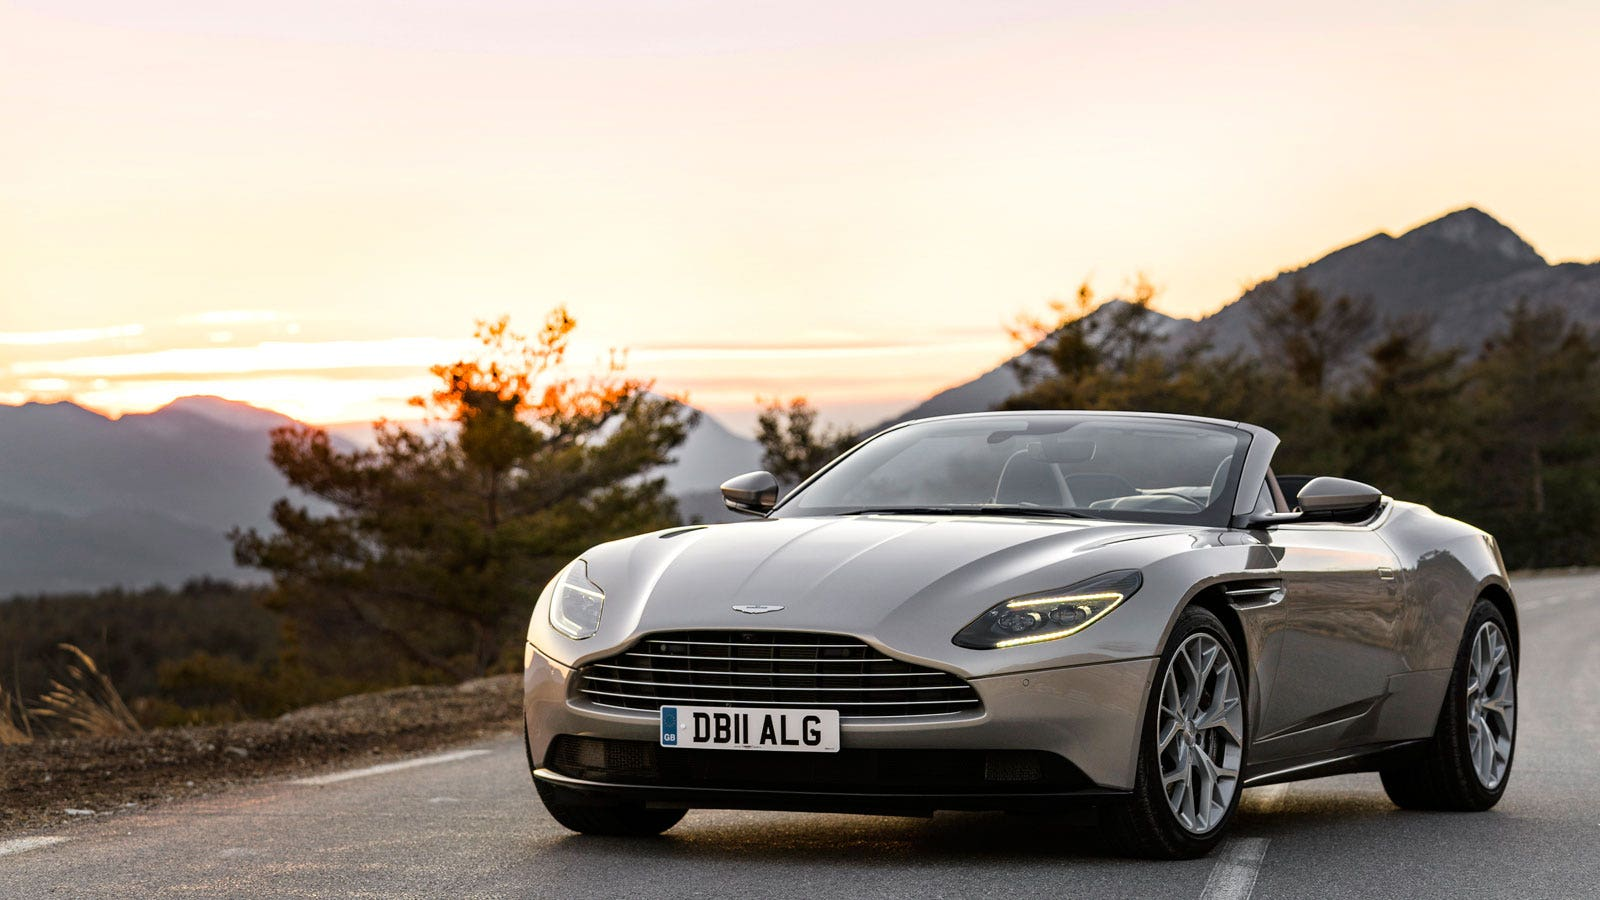 Aston Martin Announces IPO Plans Fox Business - Aston martin jobs